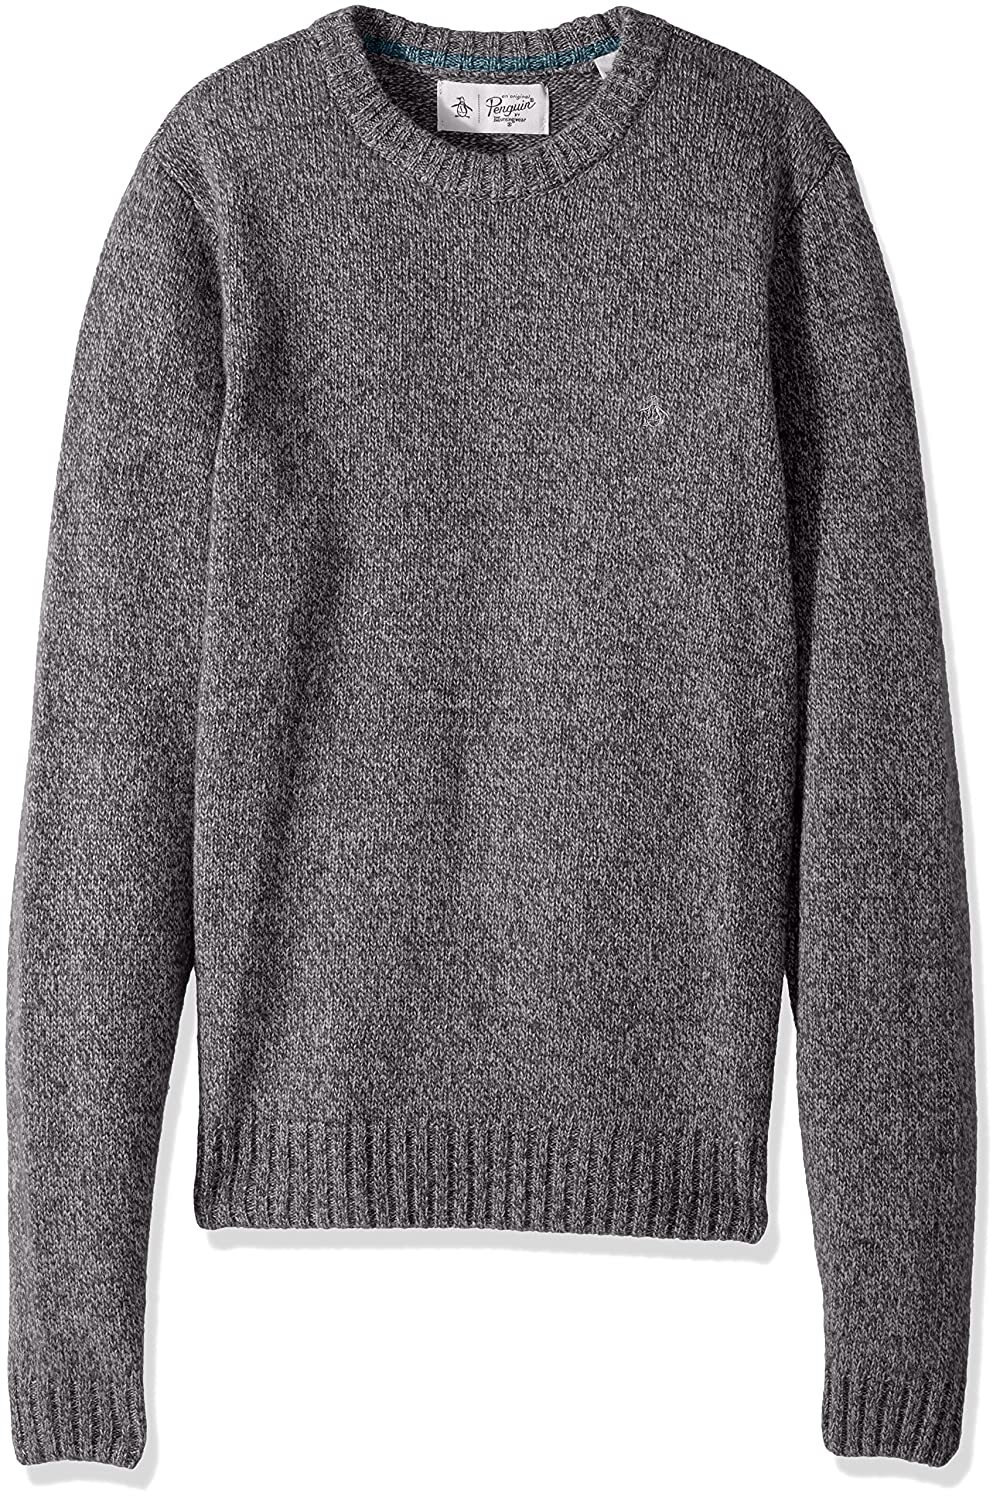 Original Penguin Men's Twisted Yarn Crew Sweater OPGF7016